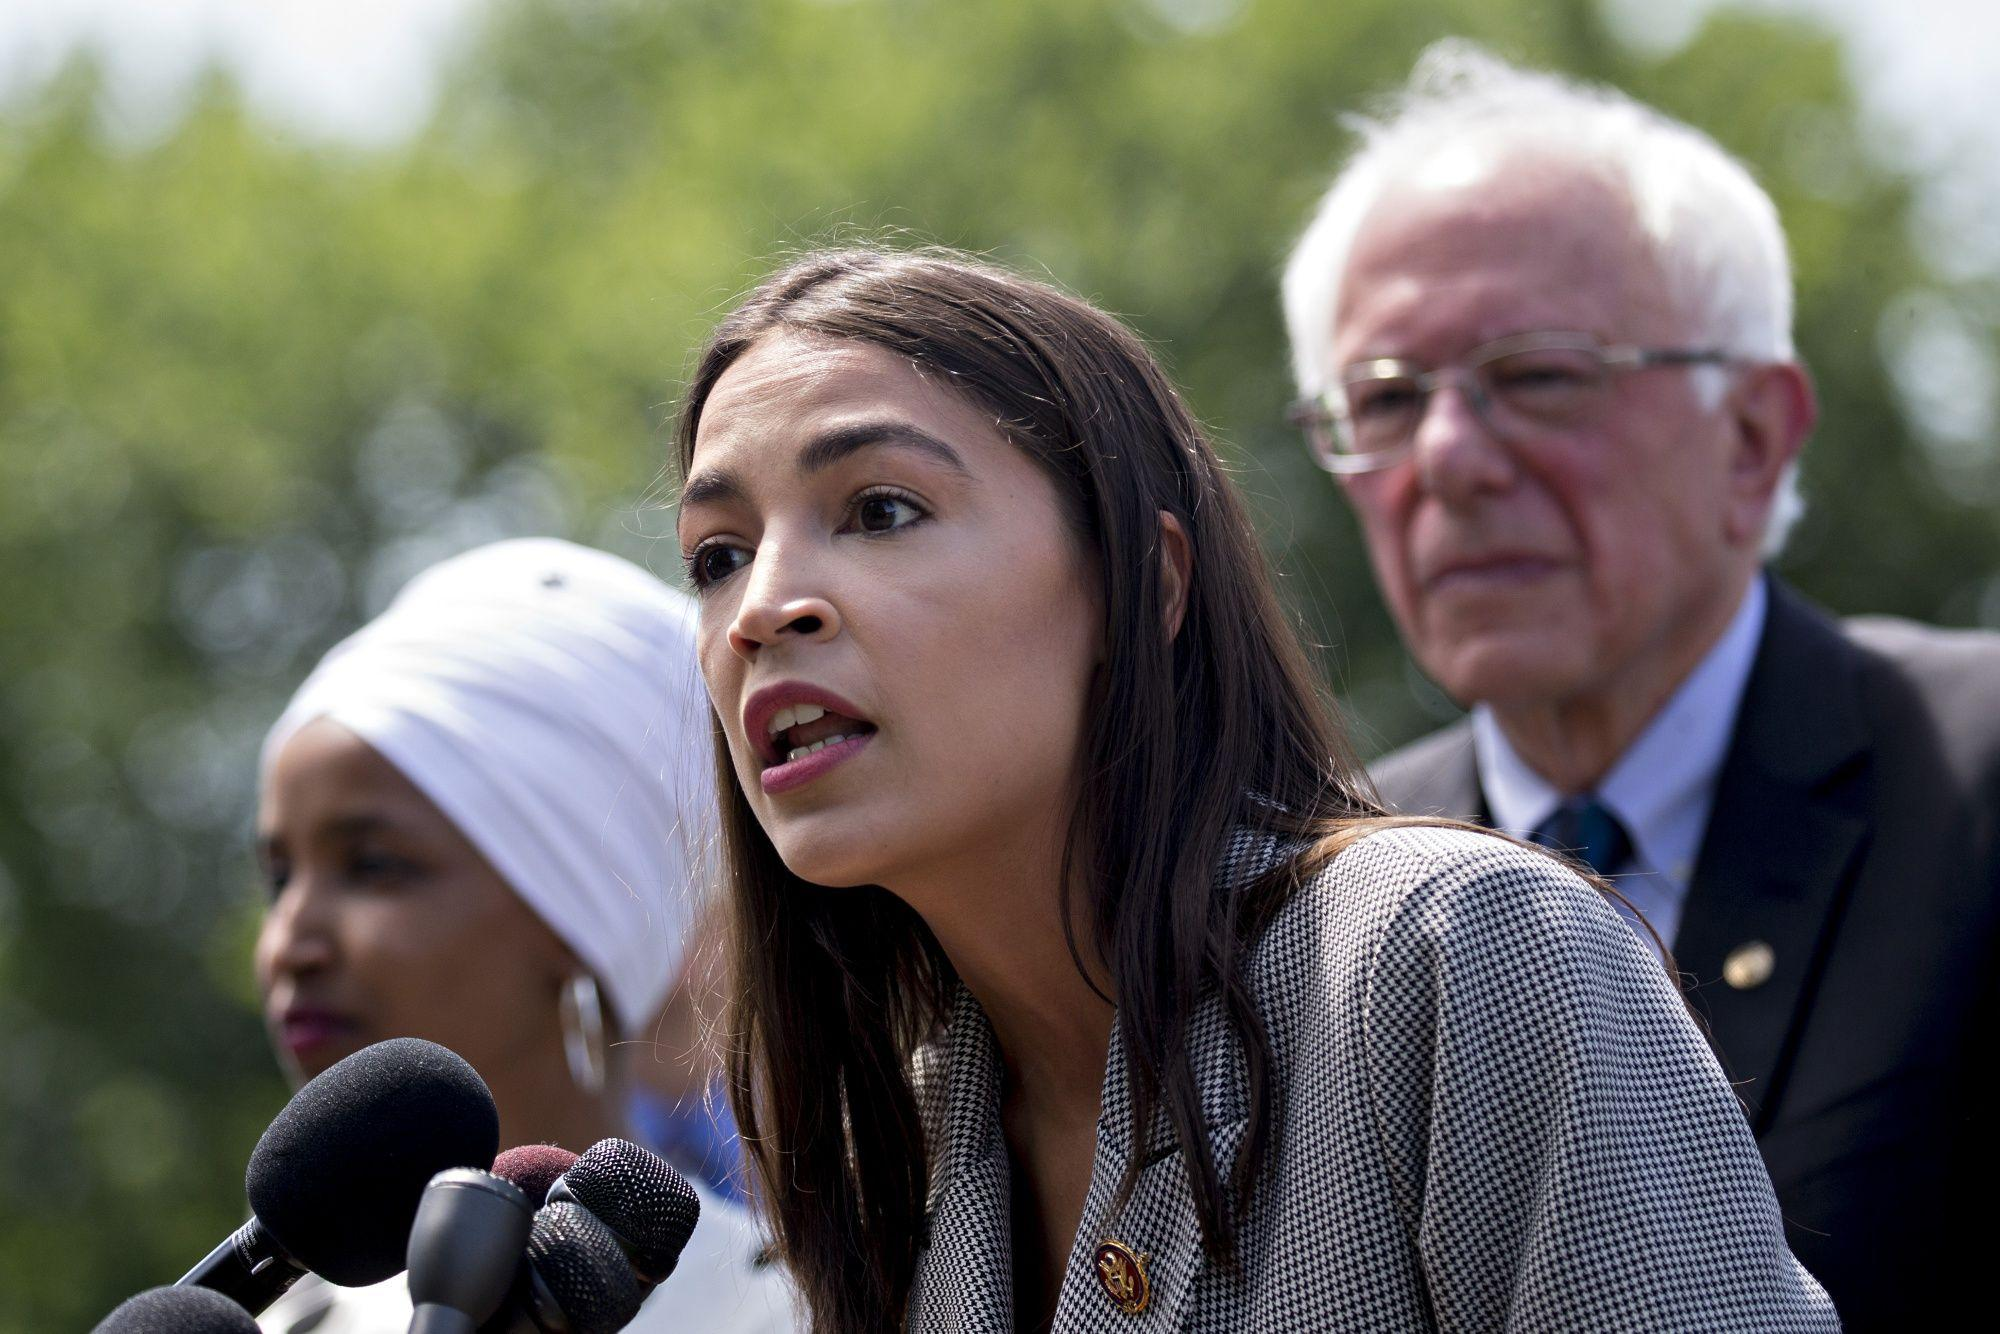 Ocasio-Cortez to endorse Sanders for 2020 Democratic nomination